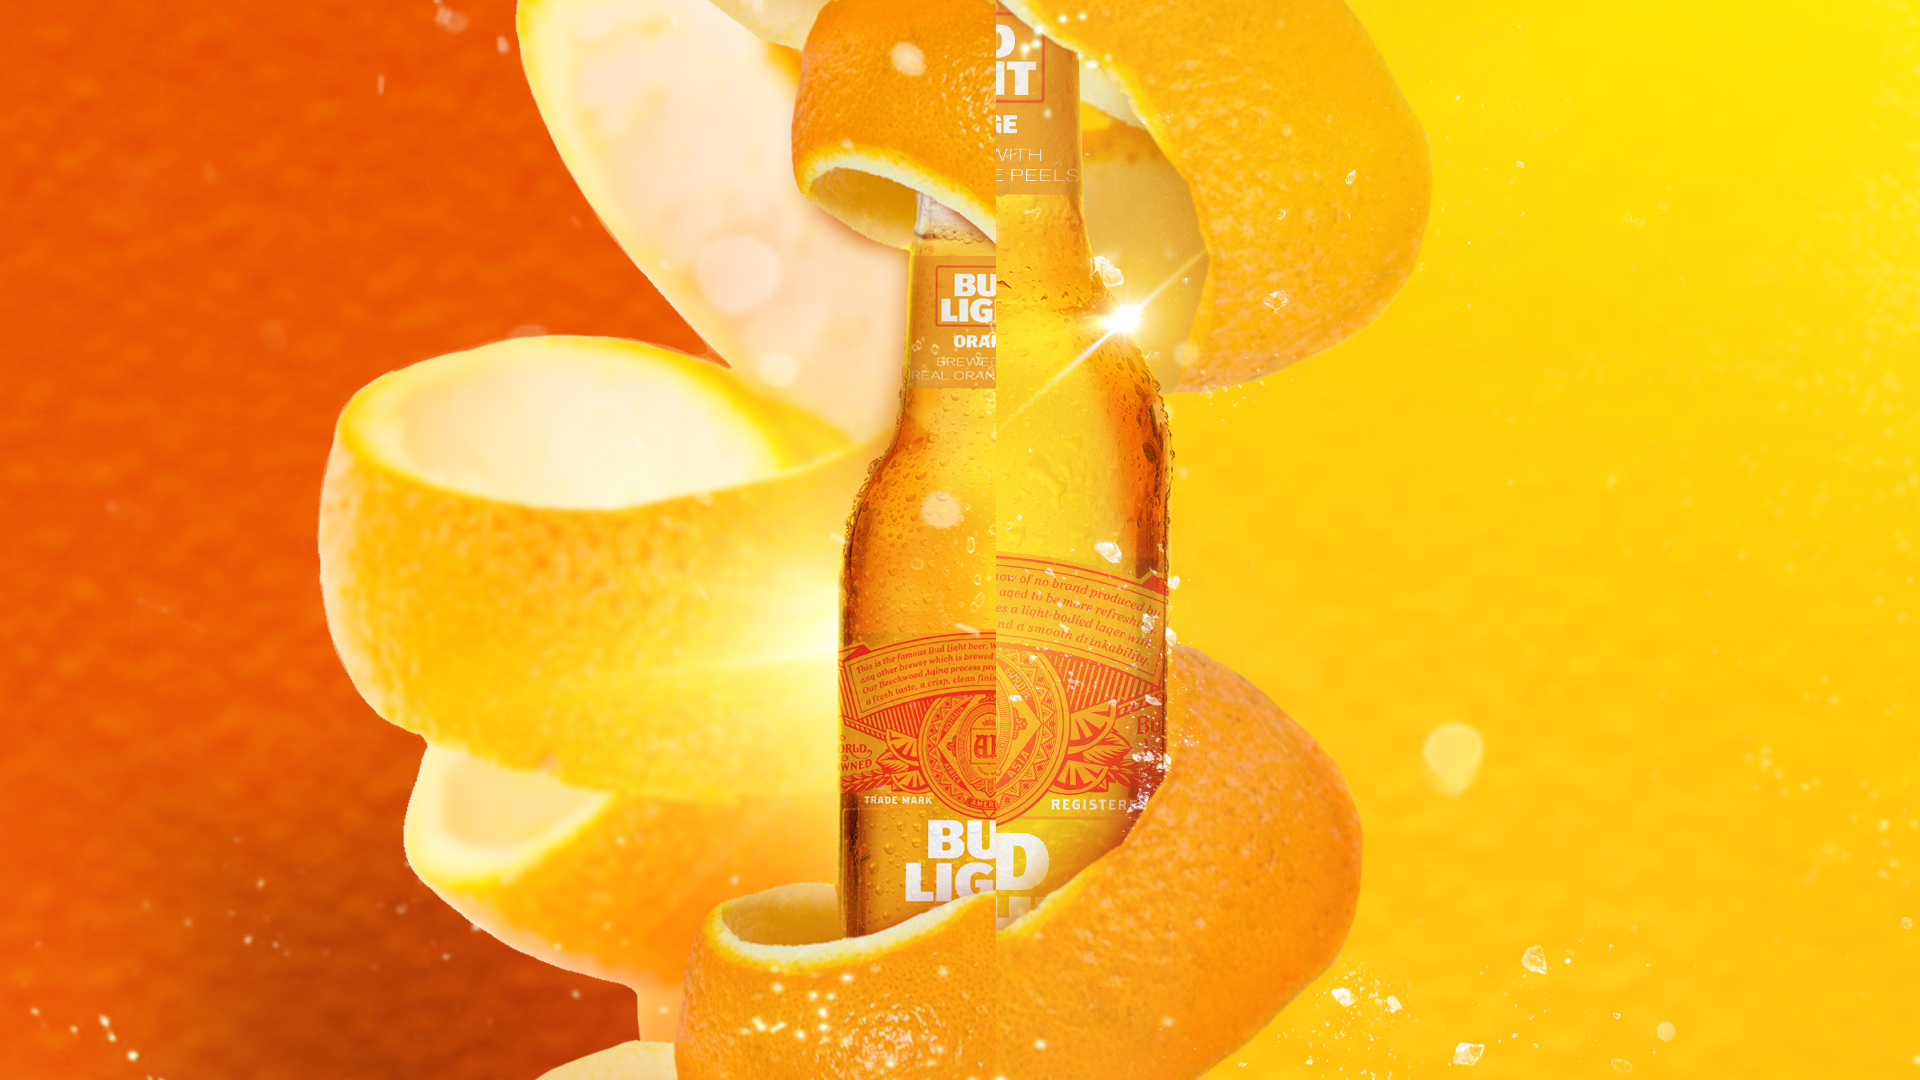 budlight_orange_v02_cl.jpg